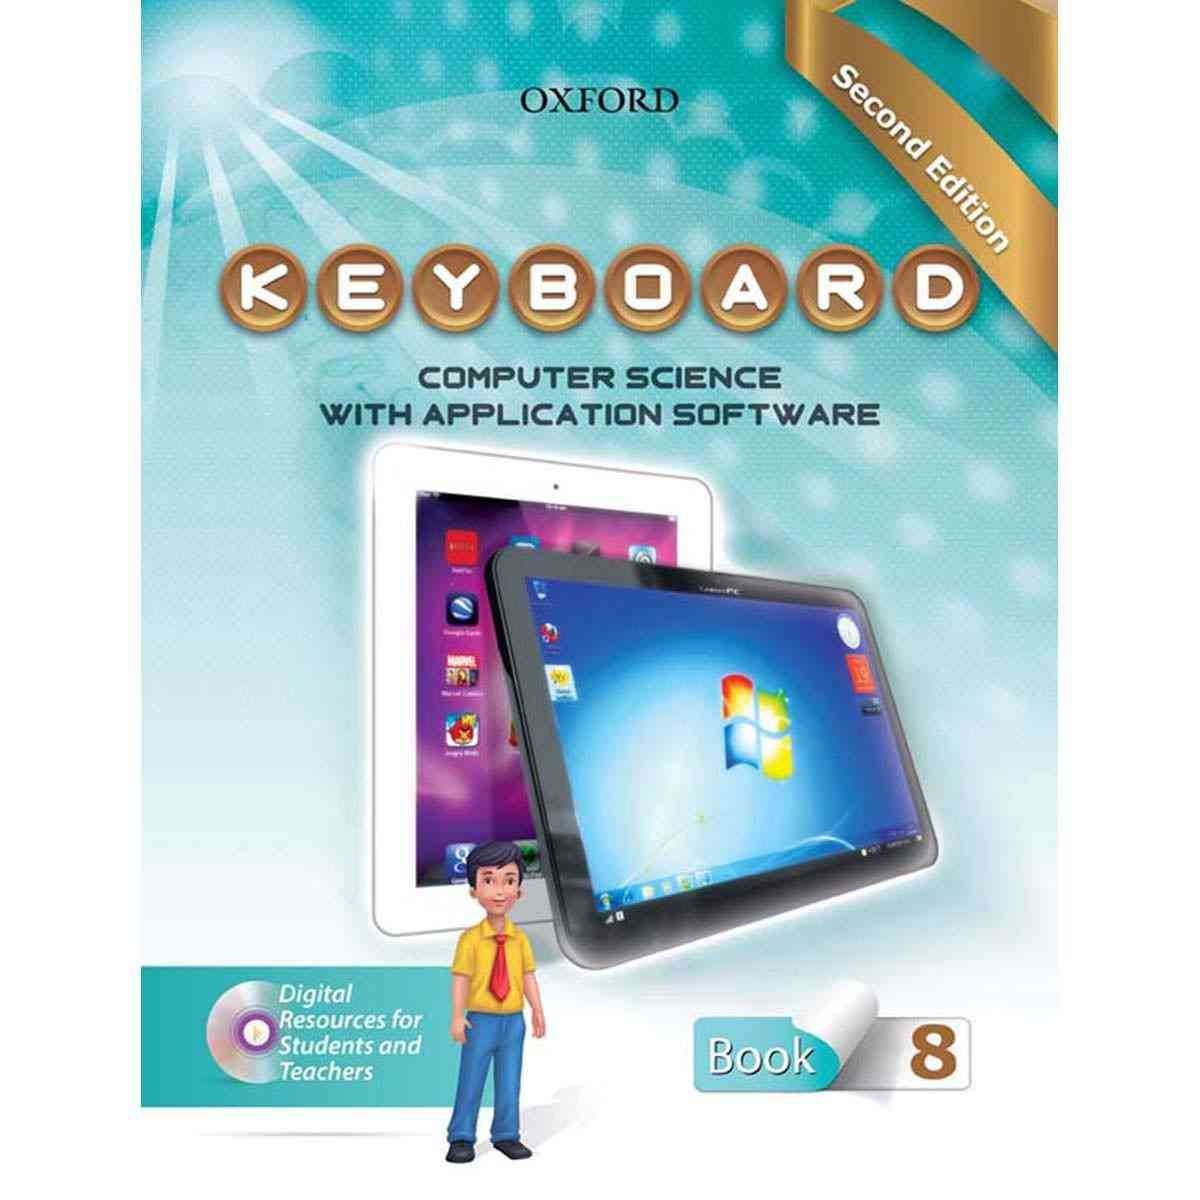 Oxford Books Keyboard Second Edition Book 8